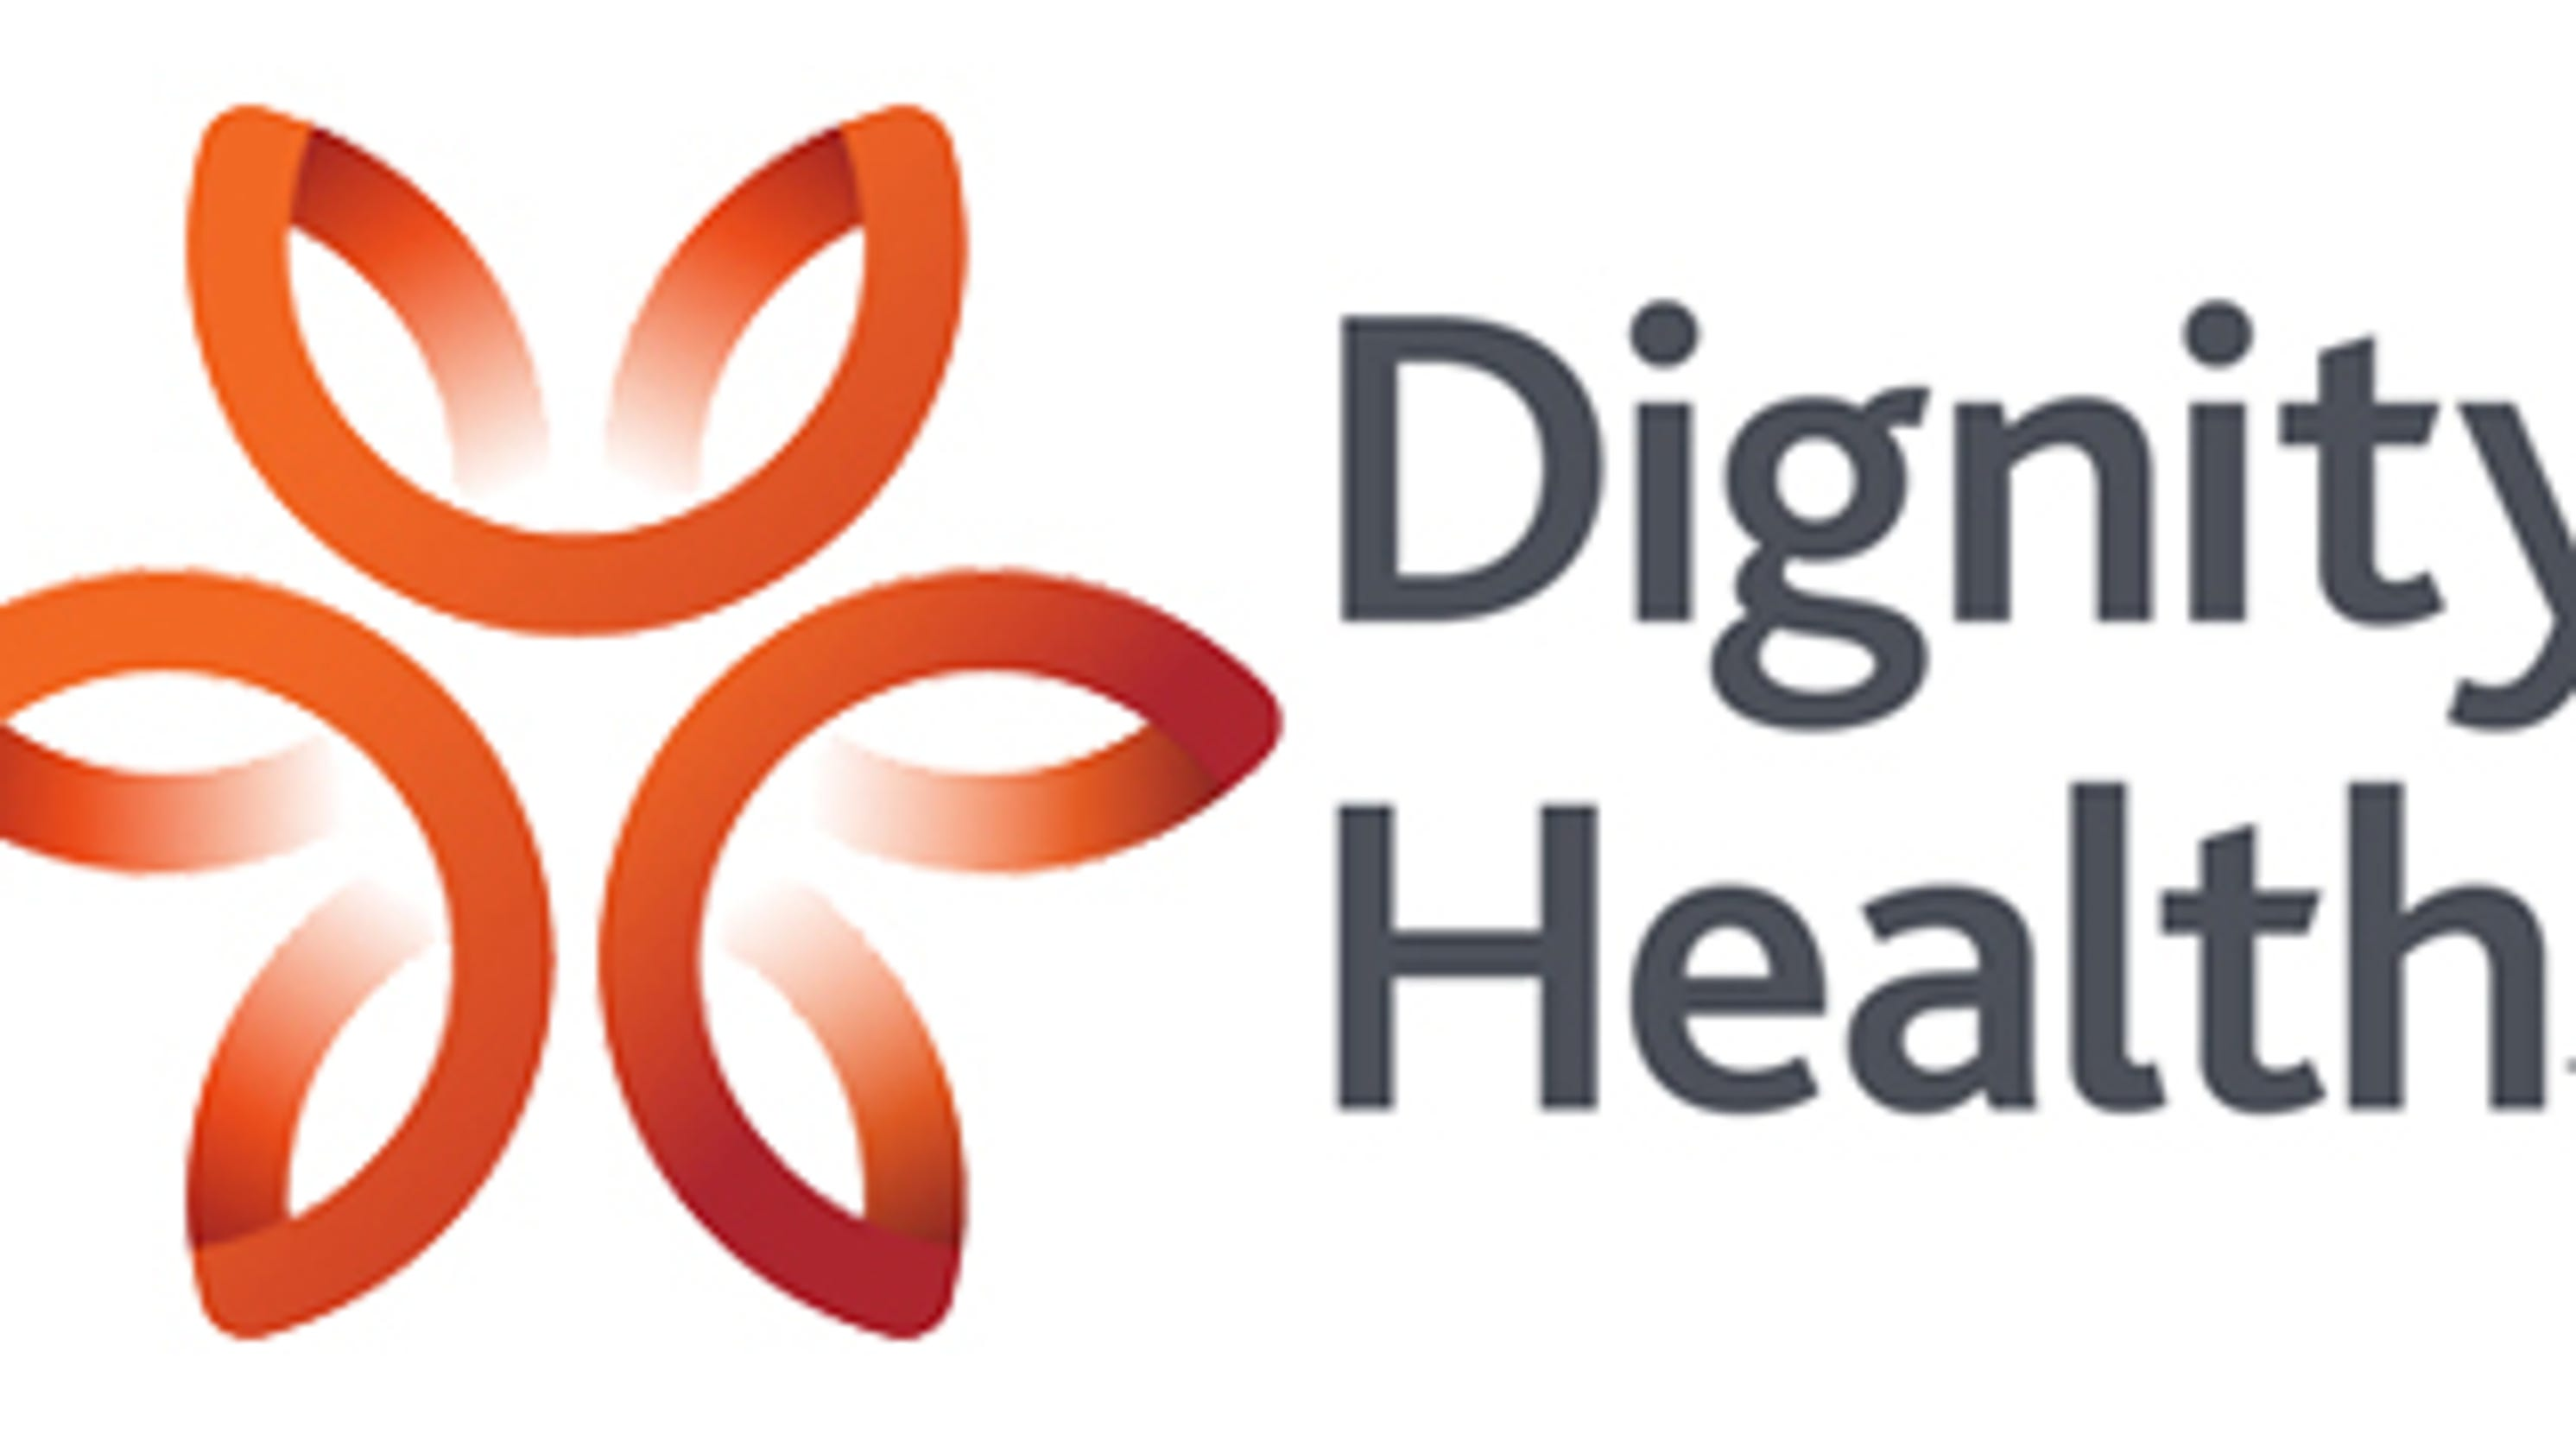 Dignity Health merges with Catholic Health Initiatives